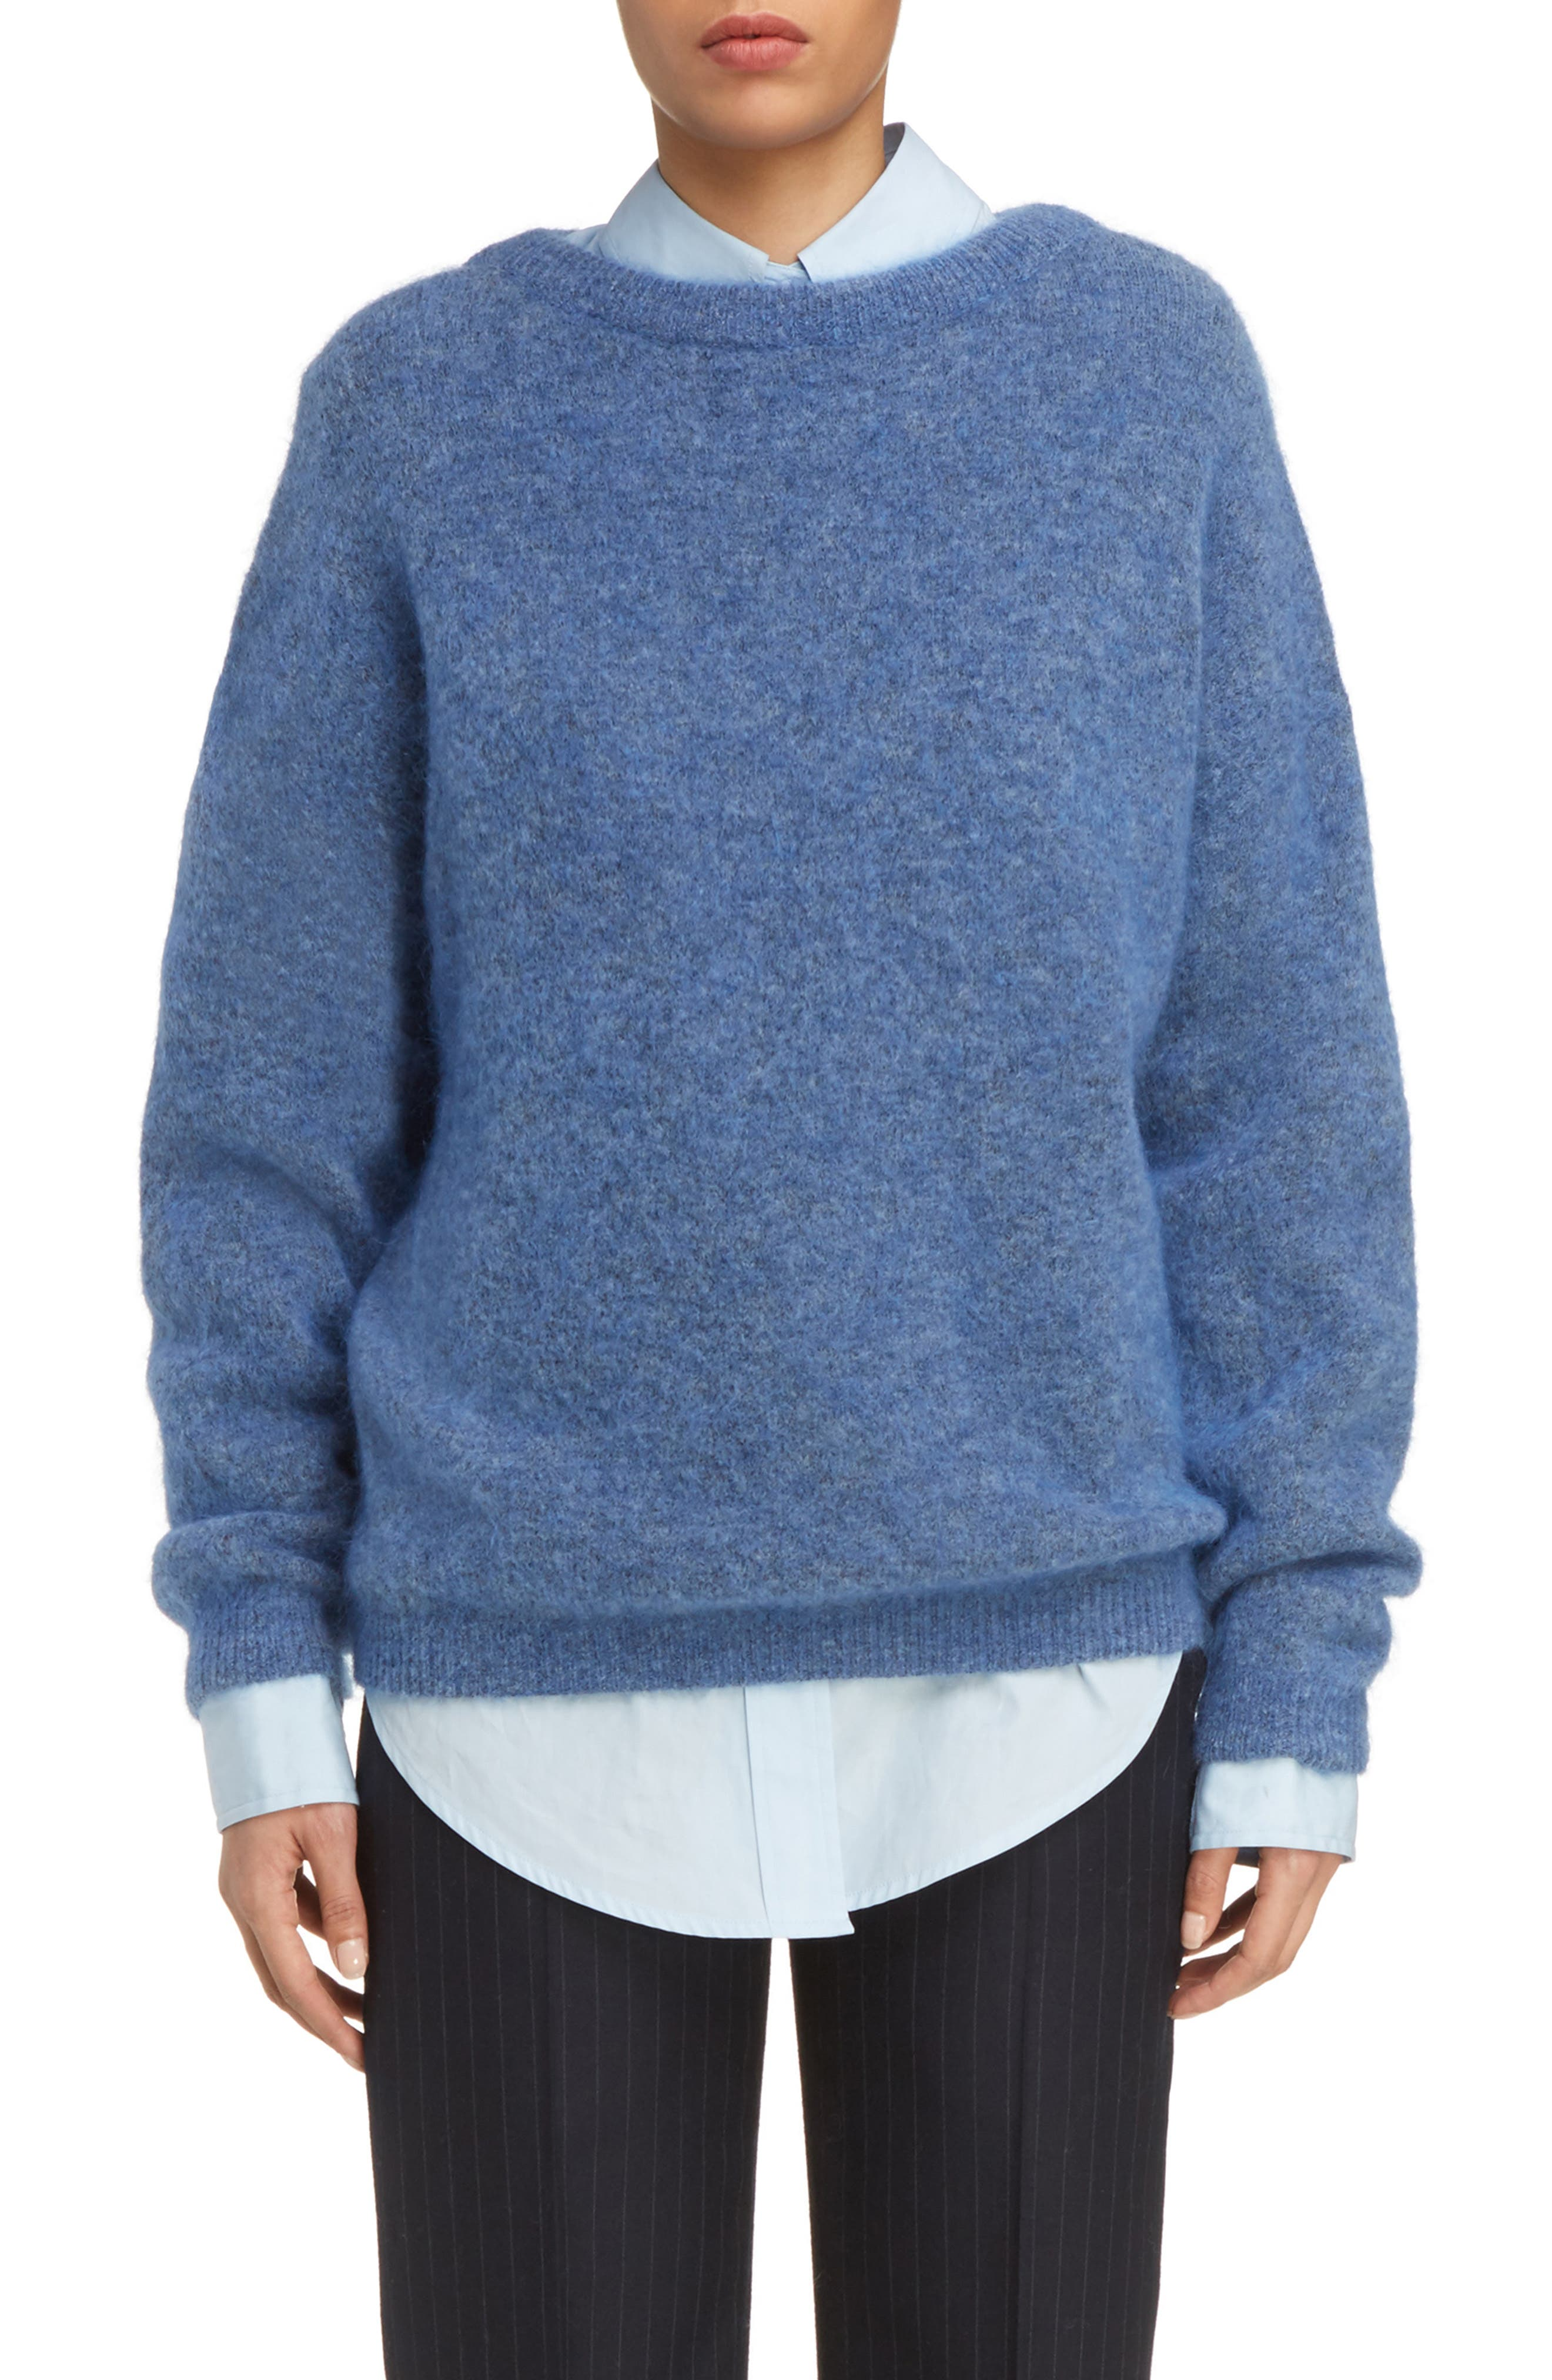 Alternate Image 1 Selected - ACNE Studios Dramatic Oversized Mohair Blend Sweater